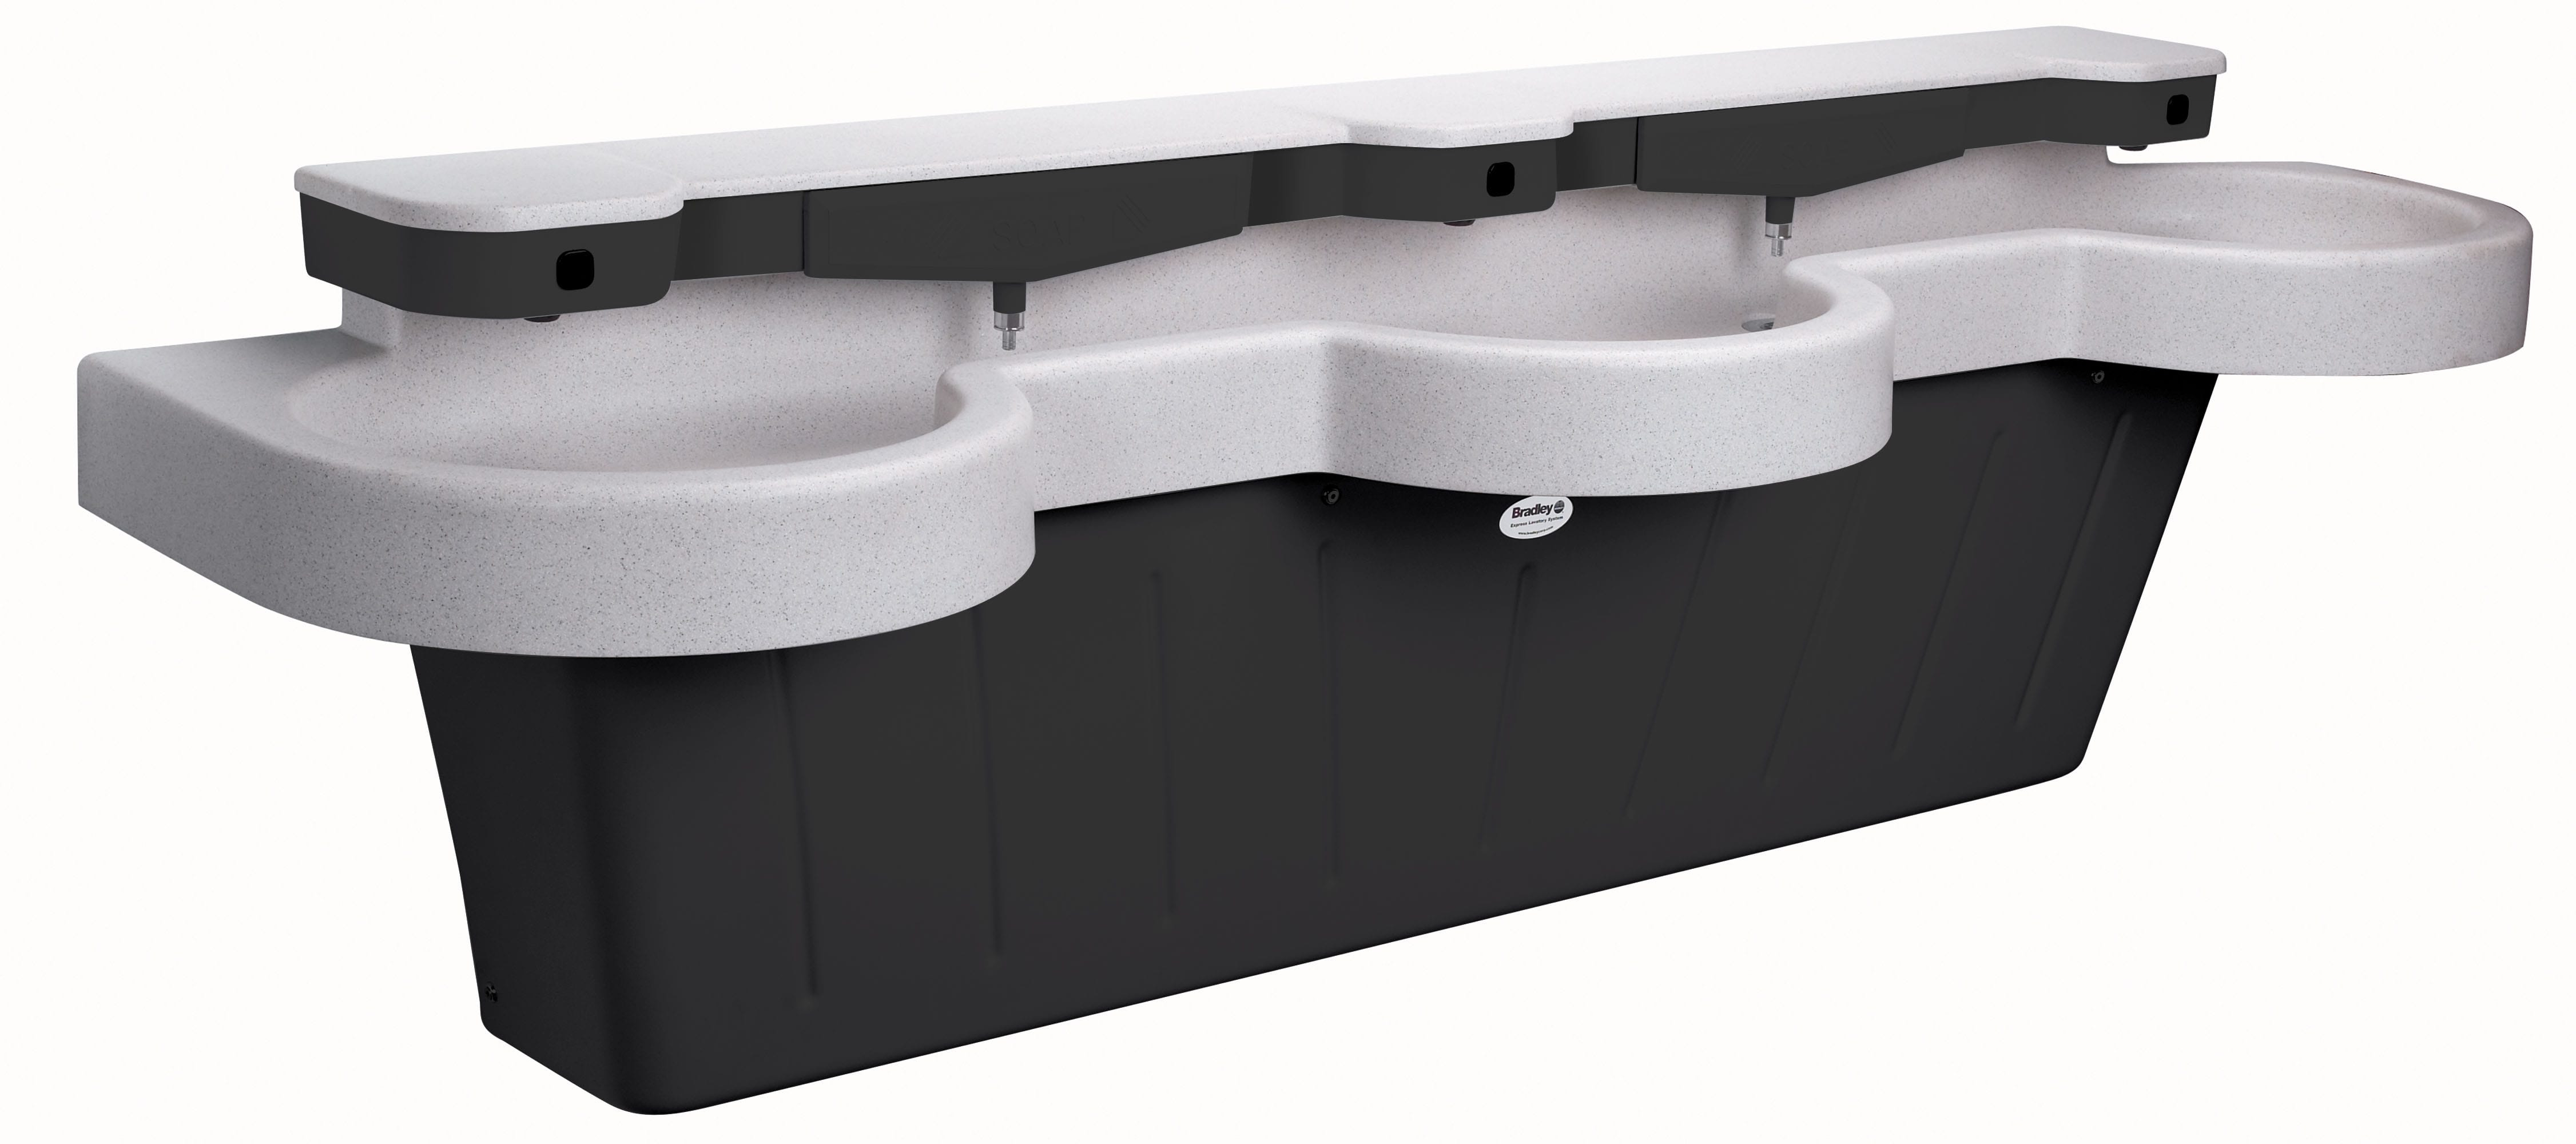 Bradley Commercial Sinks : handwashing sink SS-Series Express lavatory system - Model SS-3N